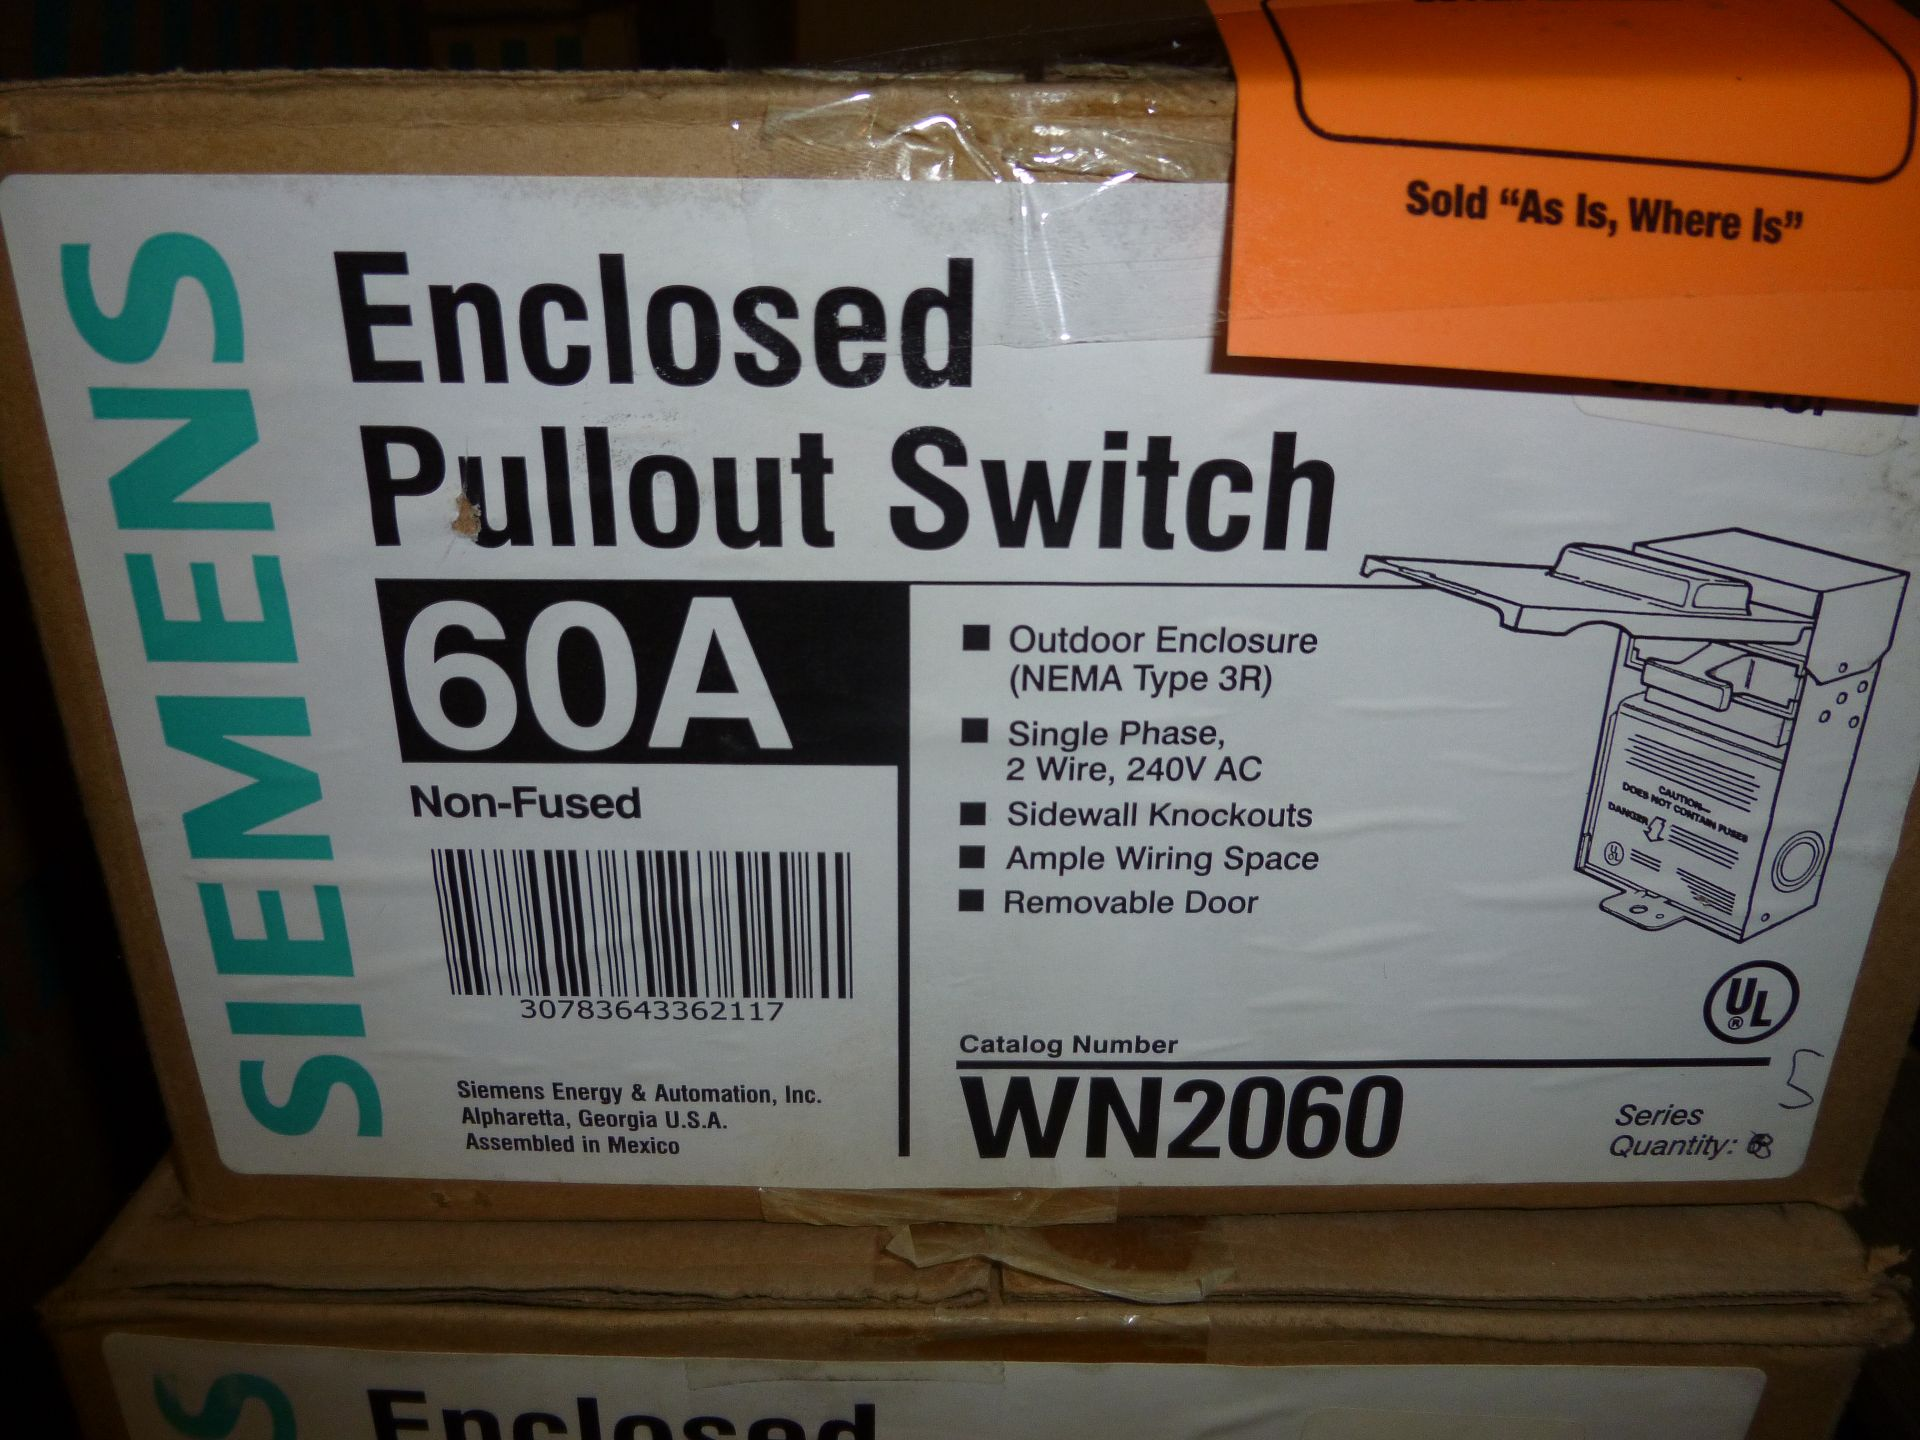 Lot 37 - Qty 2 Siemens model WN2060, 60amp enclosed pullout switch, new in box